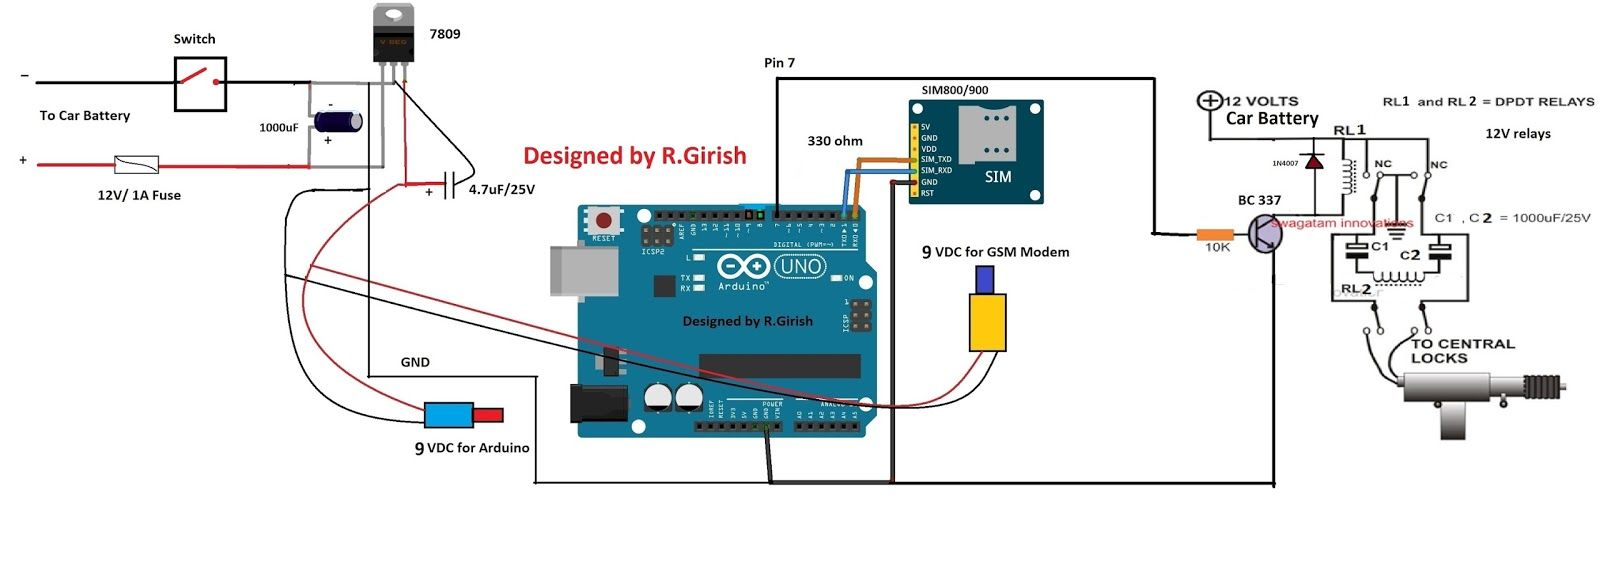 Gsm Car Ignition And Central Lock Using Arduino Homemade Circuit Projects Arduino Circuit Projects Ignition System